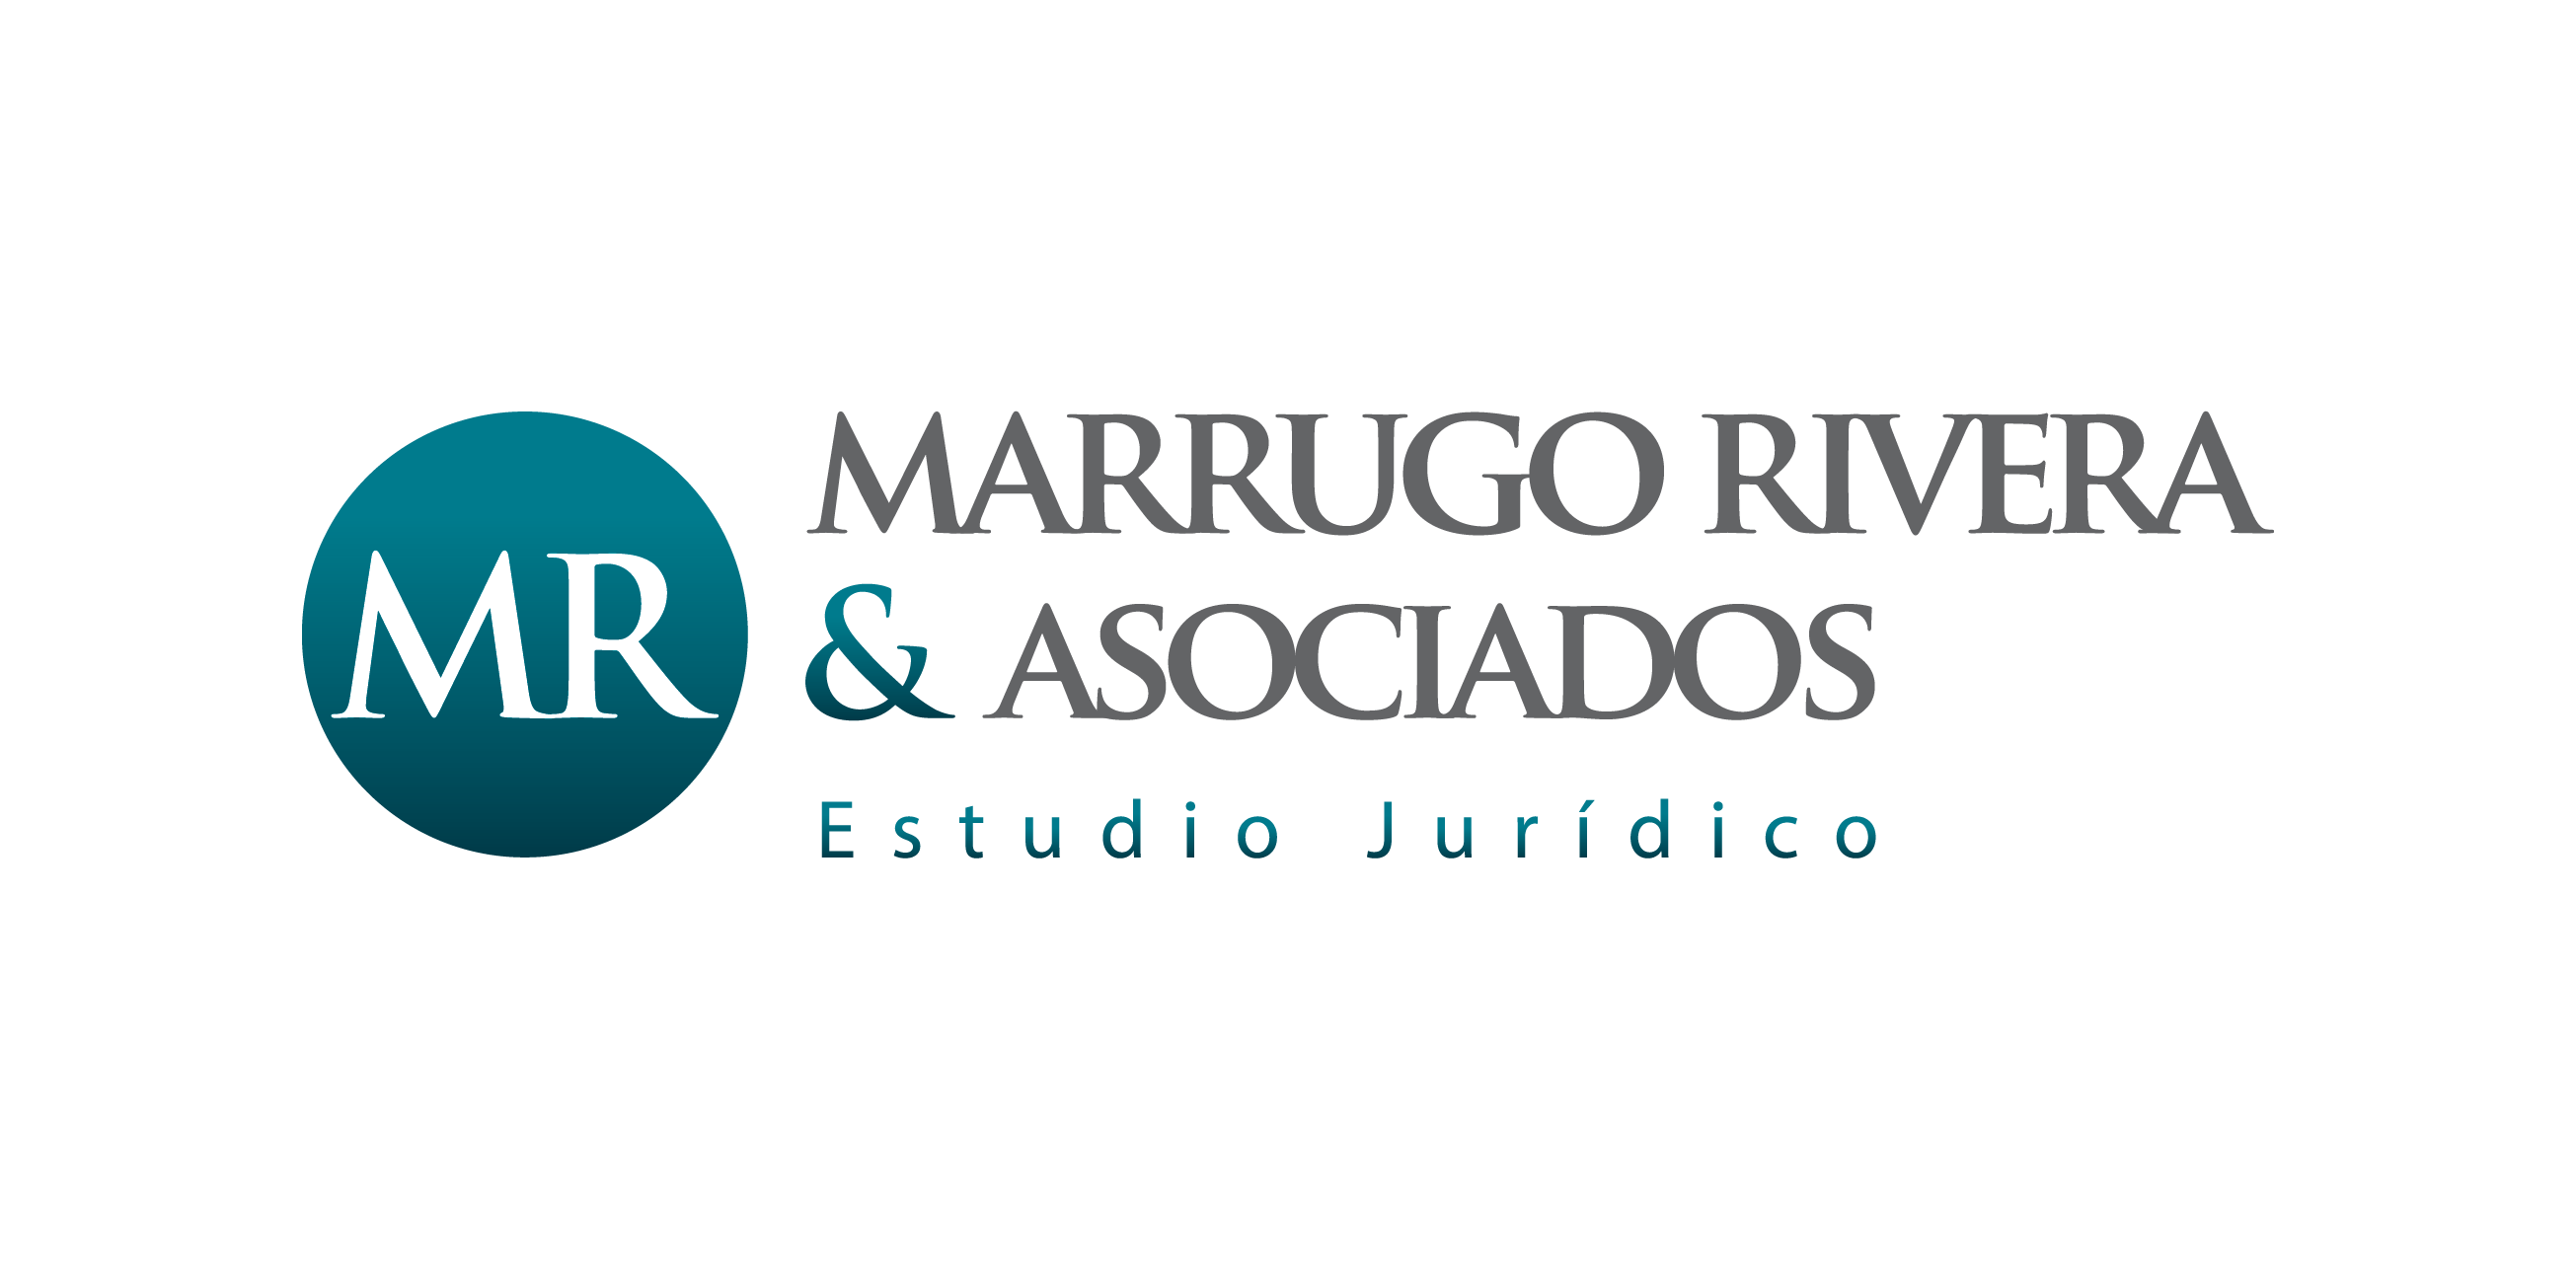 Marrugo Rivera